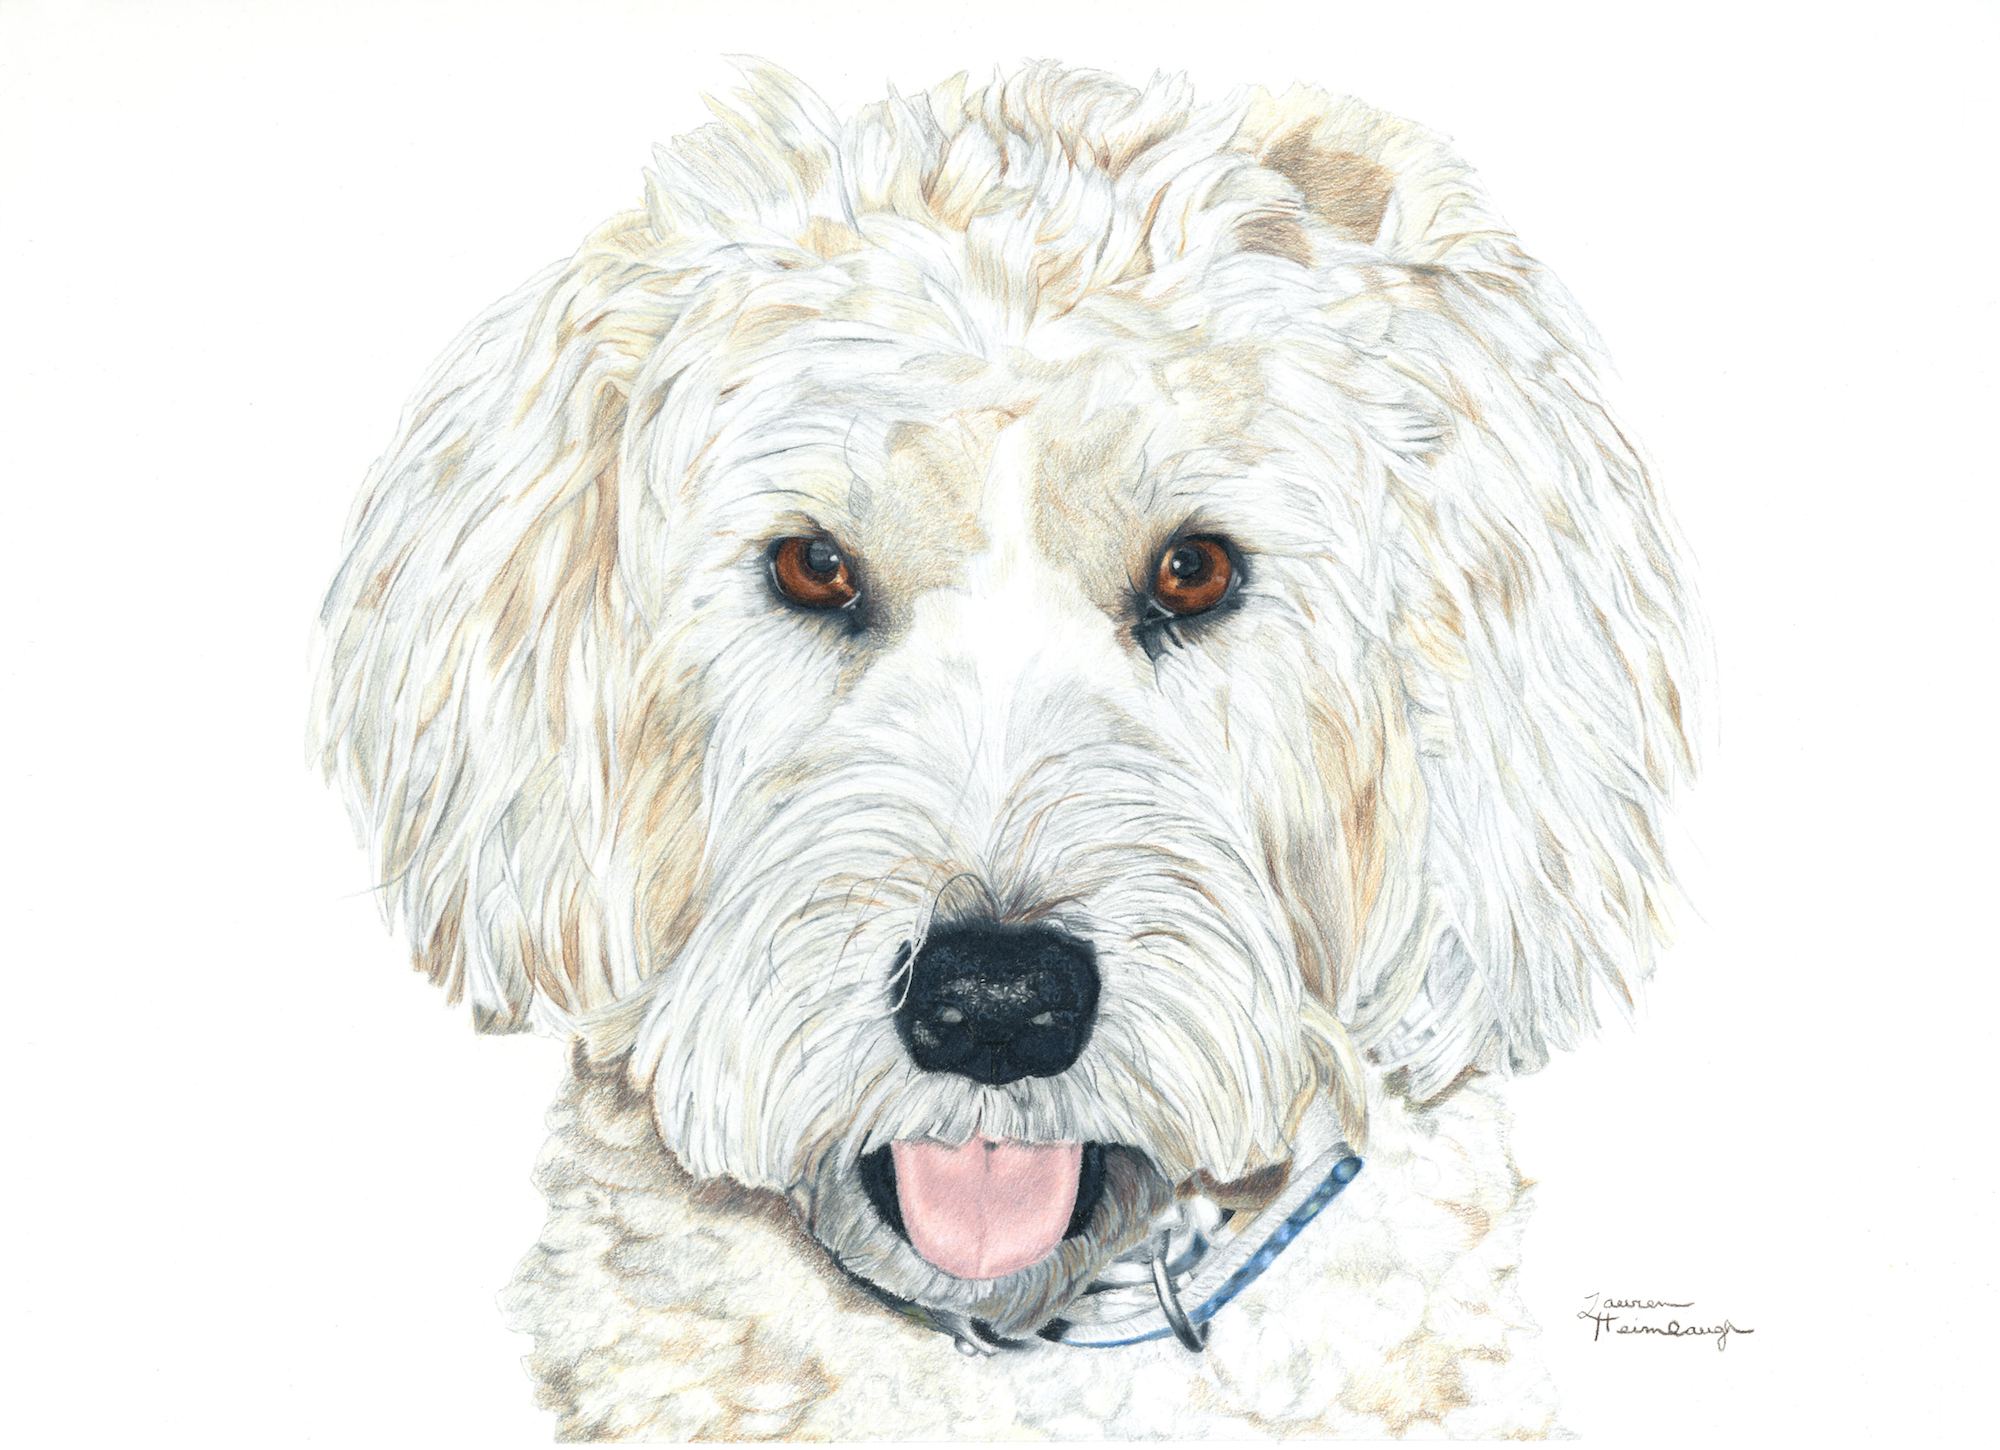 Carmela the Soft-Coated Wheaten Terrier (2013)